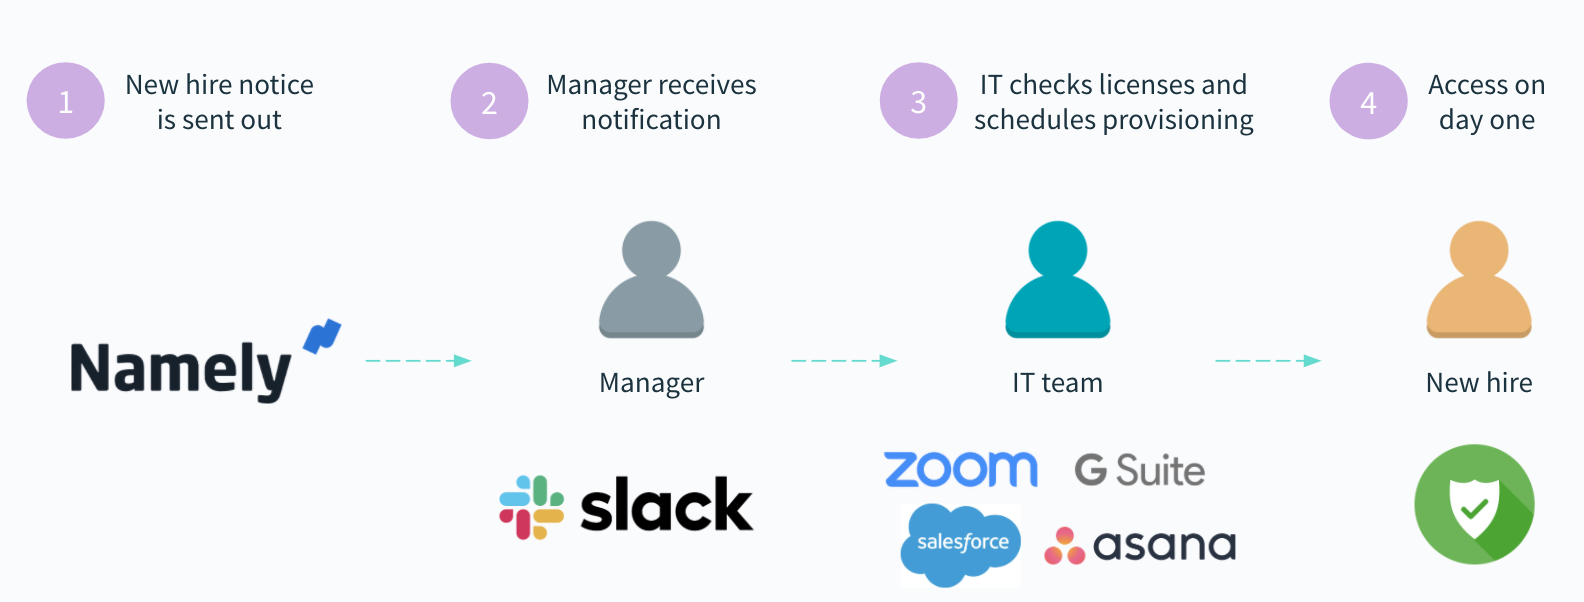 A provisioning workflow for new hires